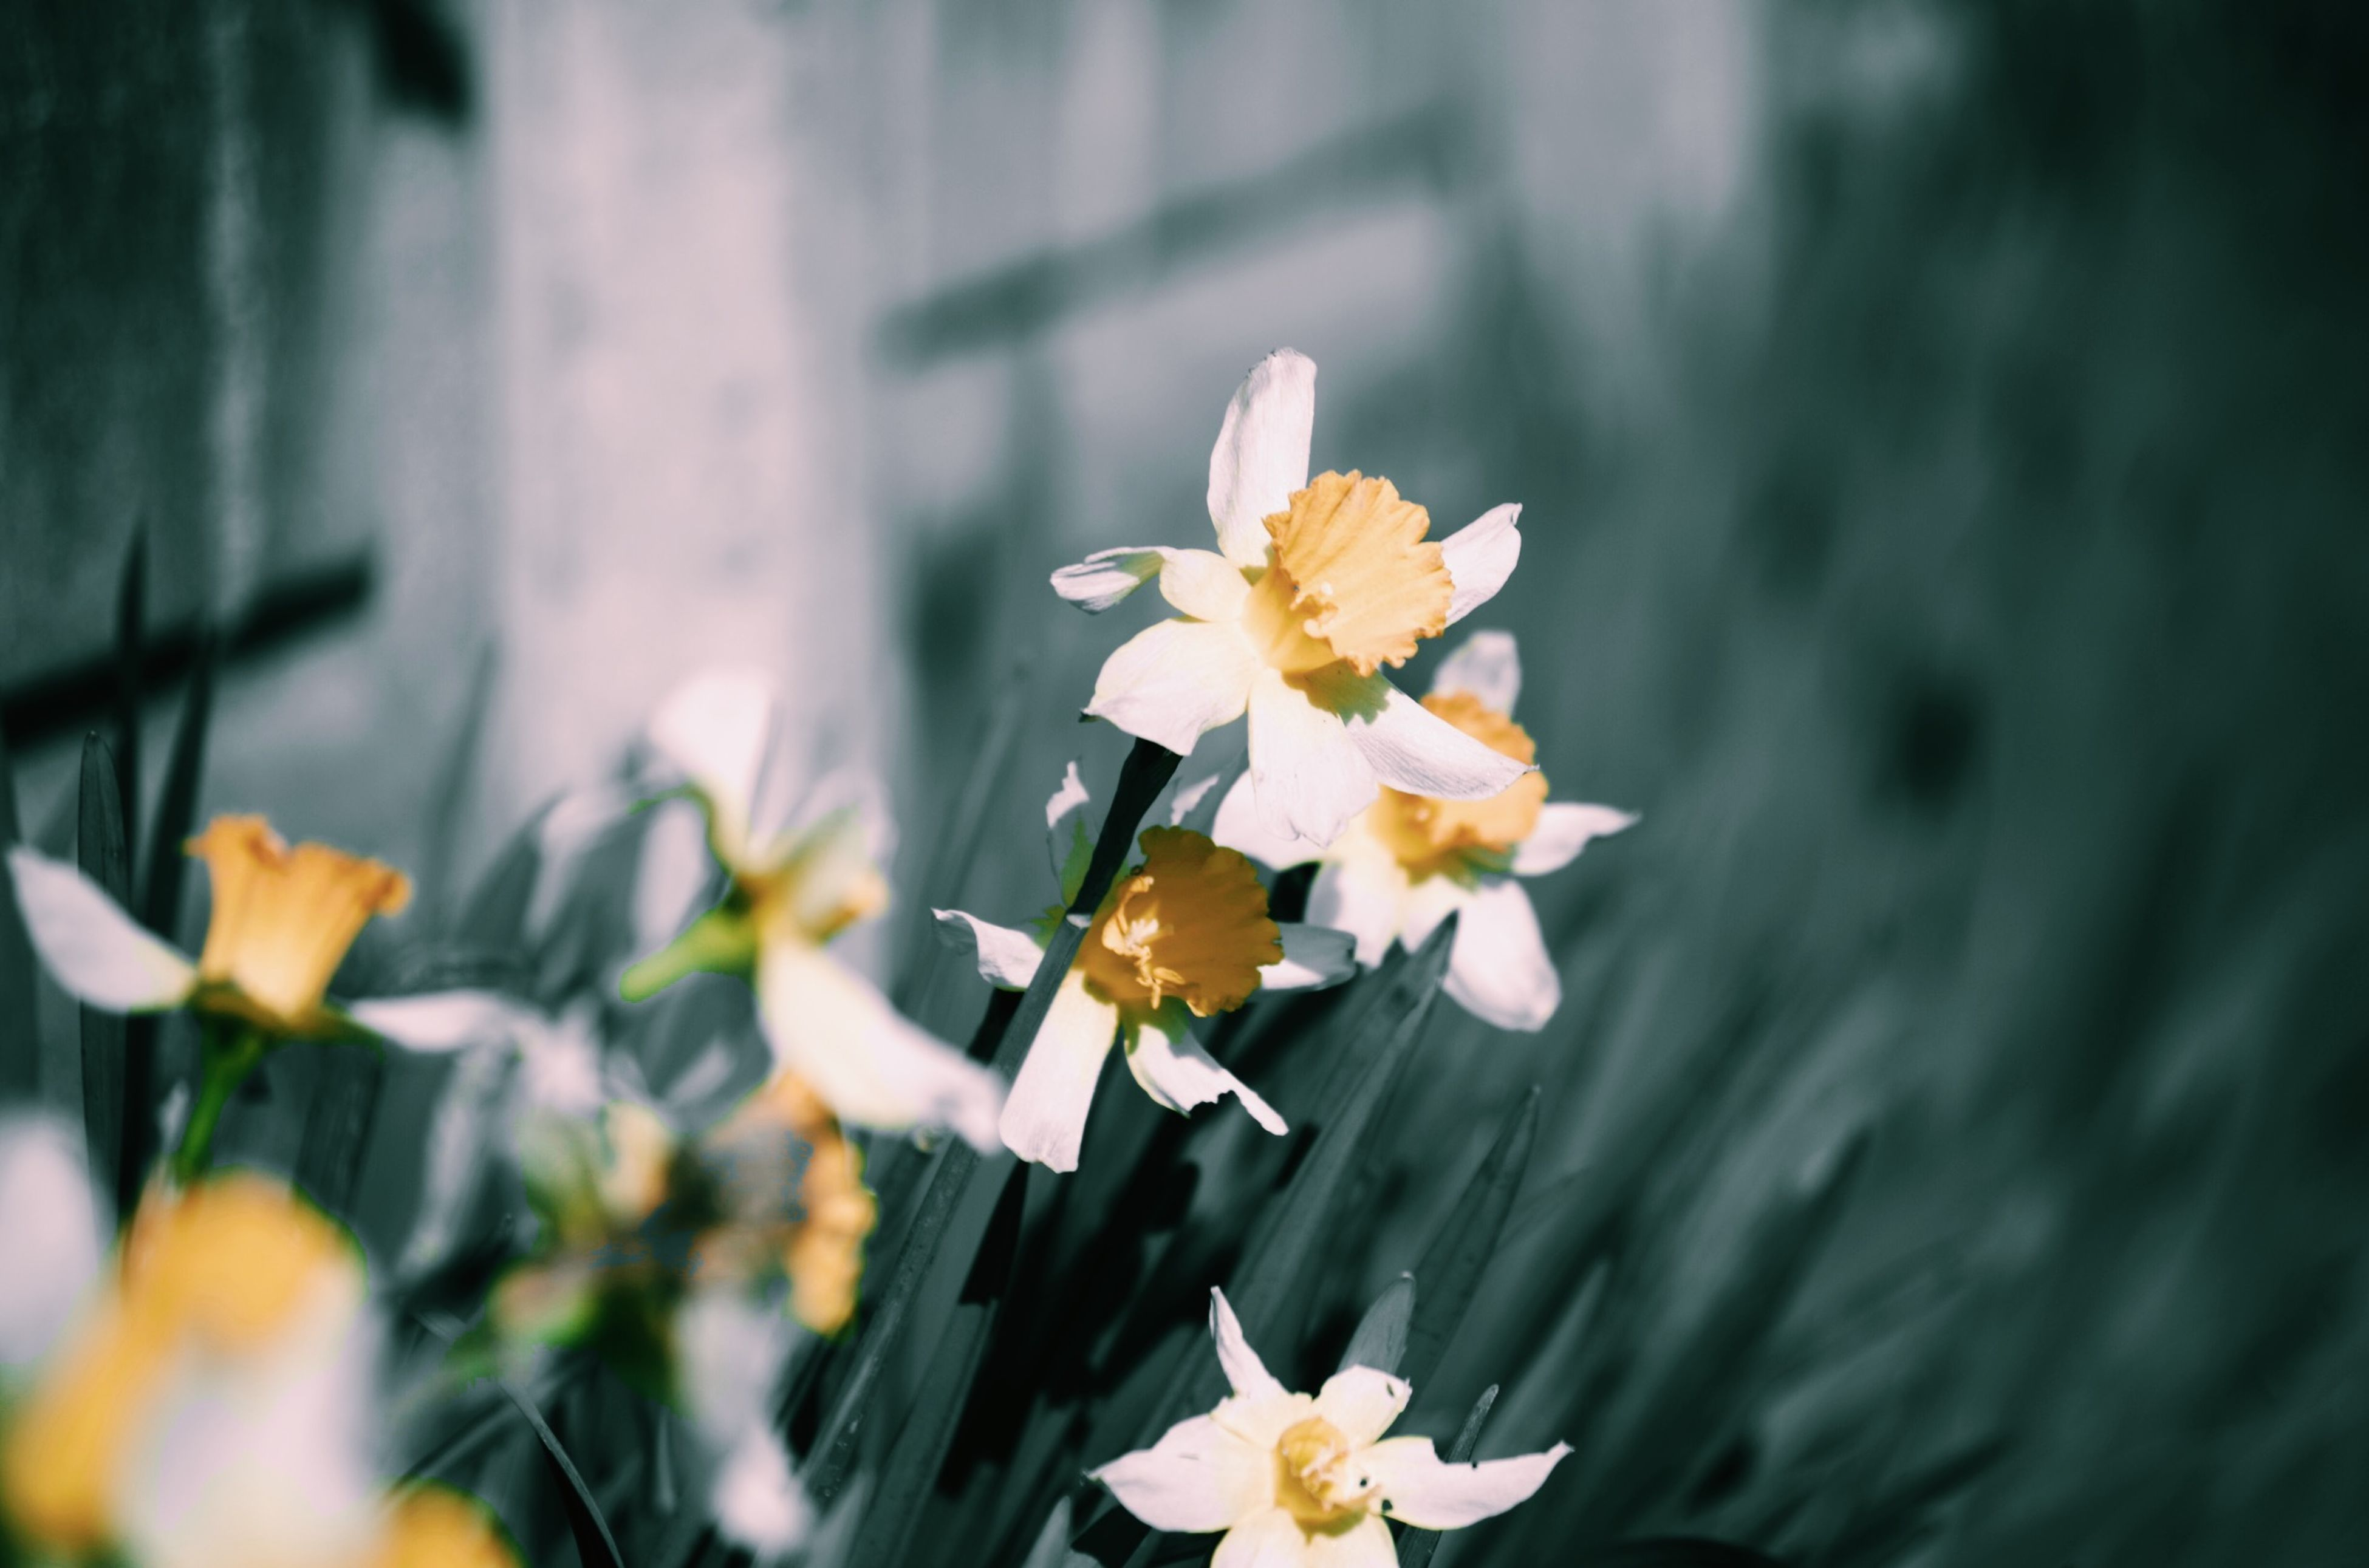 flower, petal, fragility, freshness, flower head, focus on foreground, white color, blooming, beauty in nature, growth, pollen, nature, close-up, stem, yellow, selective focus, in bloom, plant, day, blossom